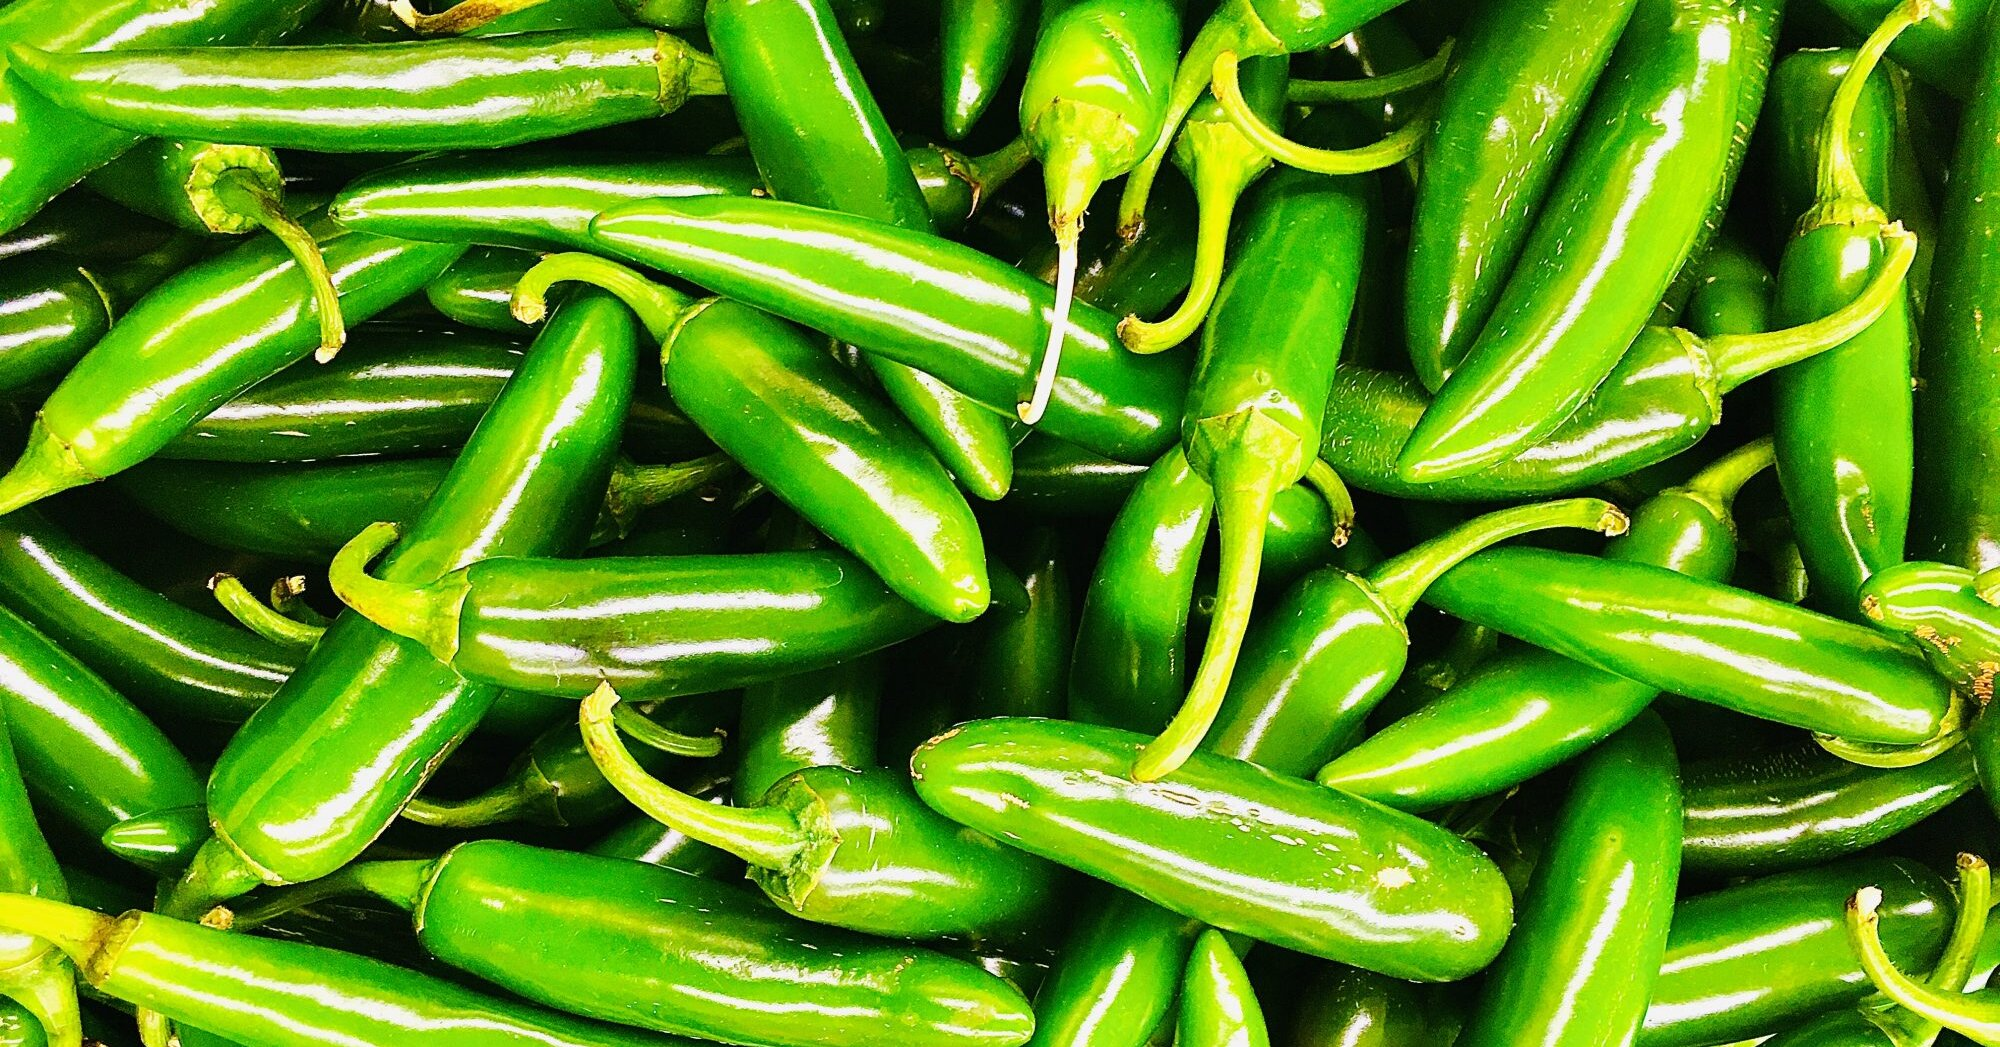 How To Pickle Jalapeño Peppers